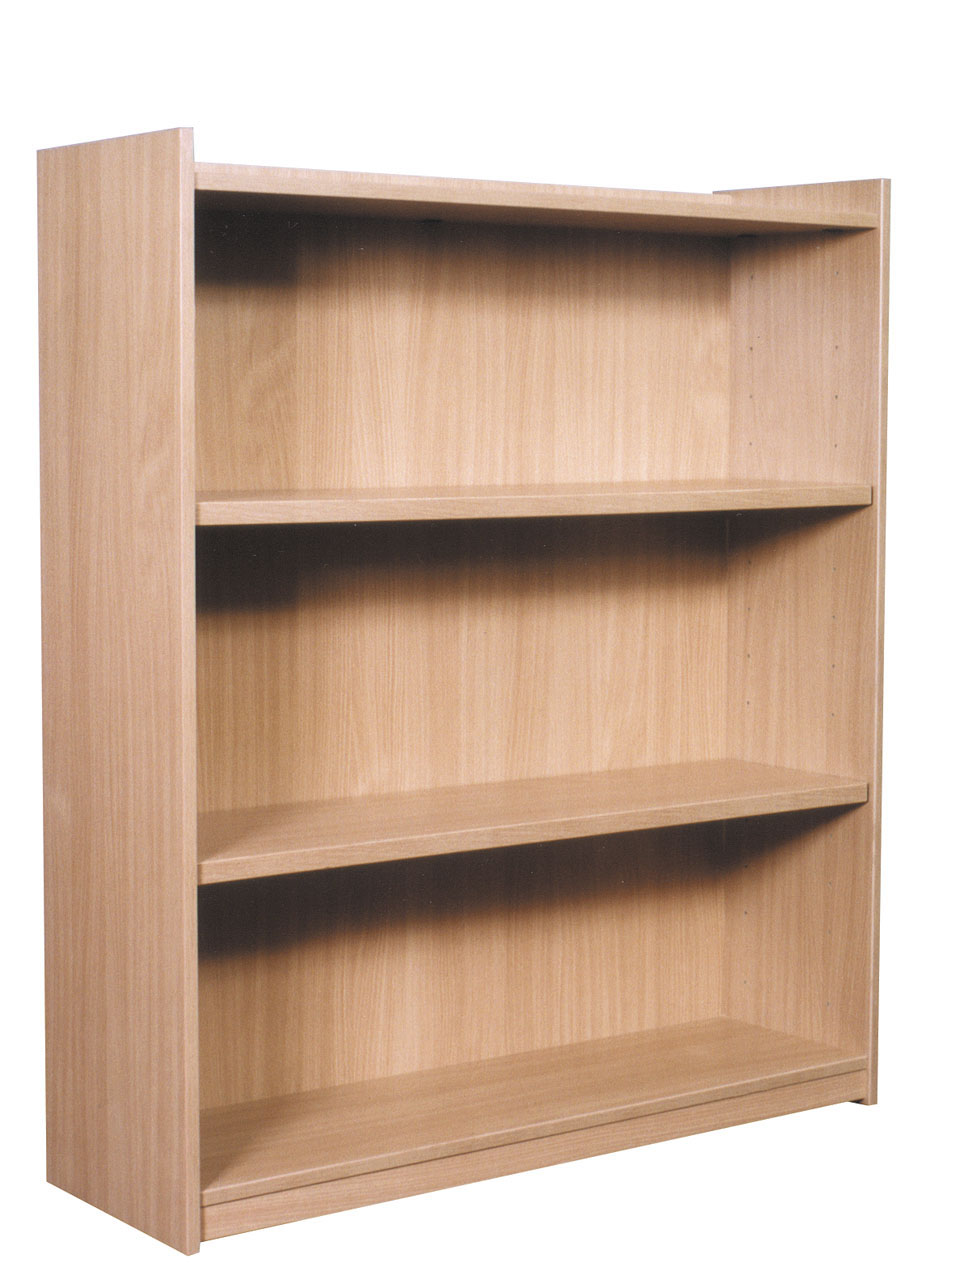 Sided bookshelf 28 images nexus curve sided bookcase 1 for Luxe decor llp